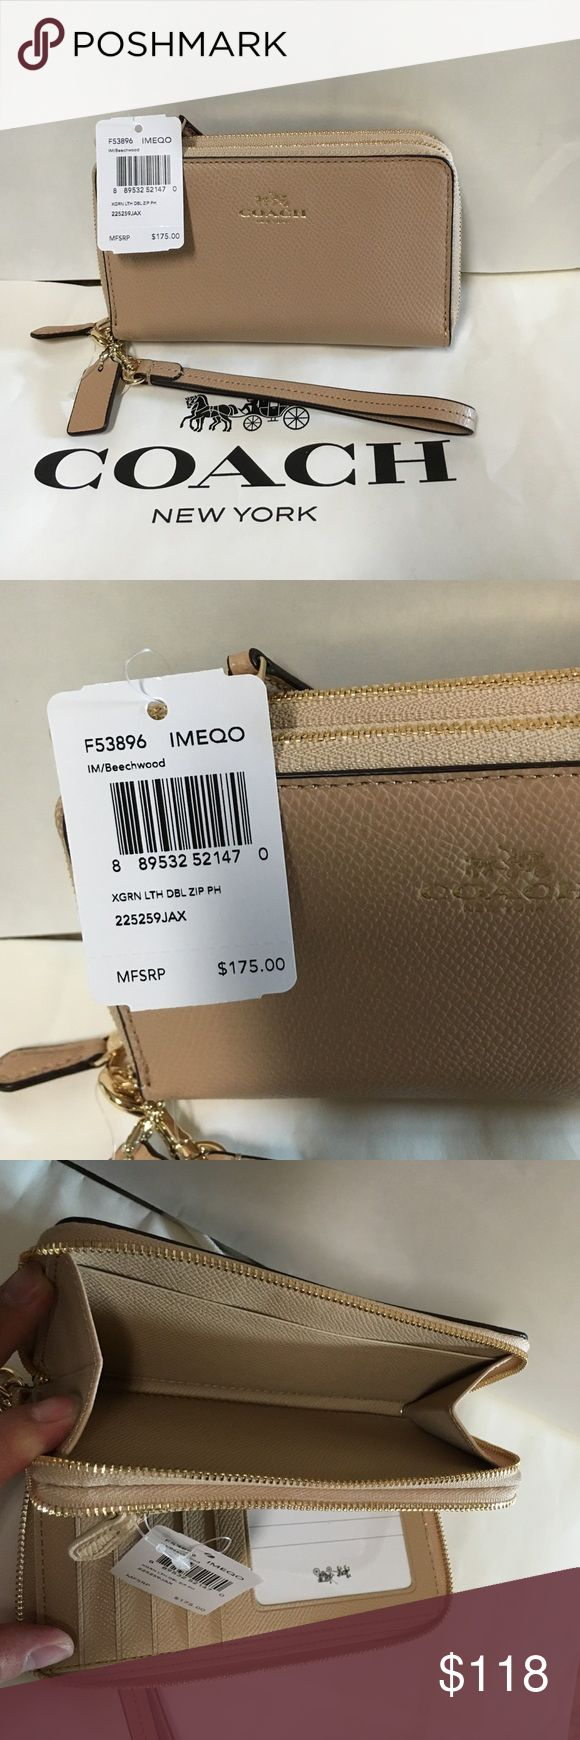 Coach wristlet/wallet double zippers nude color Authenic brand new with tag. Nude/neutral color. Lovely Coach Bags Clutches & Wristlets